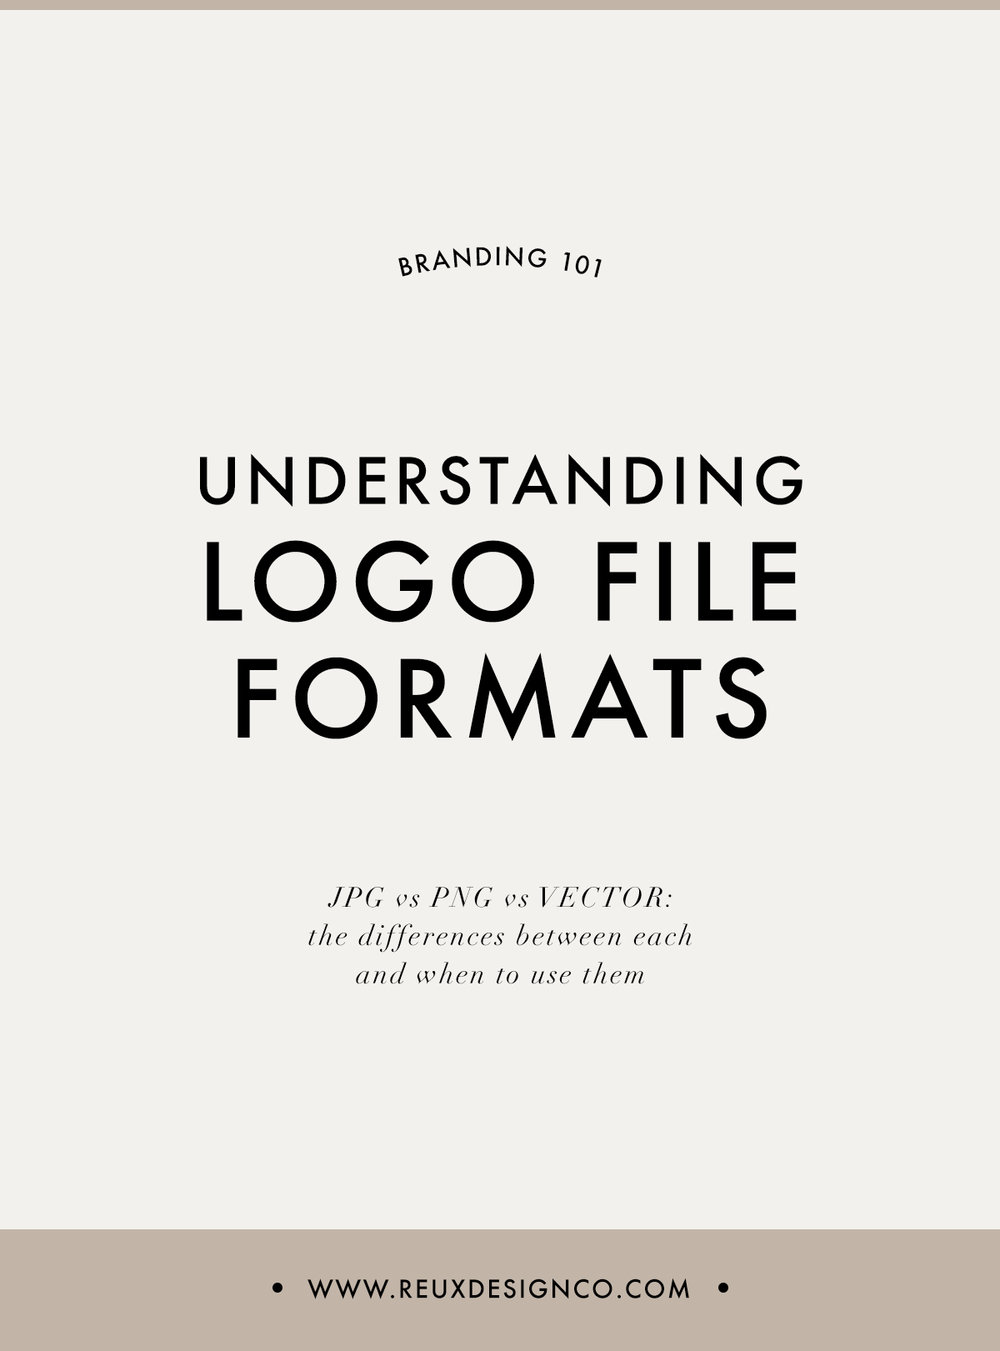 Understanding the Different Logo + Branding File Types (JPG, PNG, VECTOR) | Reux Design Co.